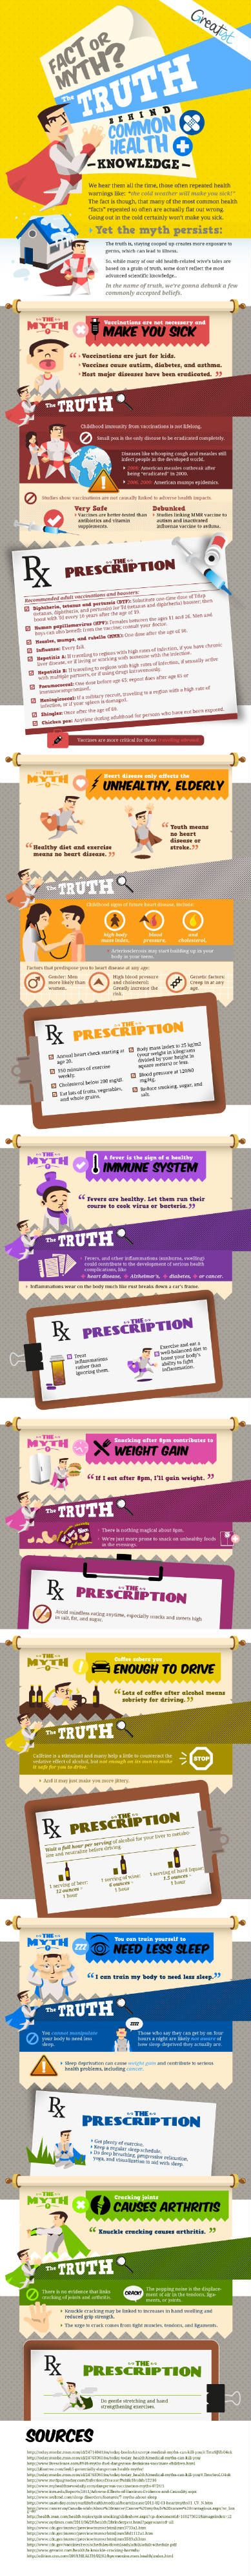 The team at Greatist has created an infographic that debunks myths relating to common health knowledge.  One myth that I can't believe isn't true is the common belief that cracking your knuckles and other joints is linked to arthritis